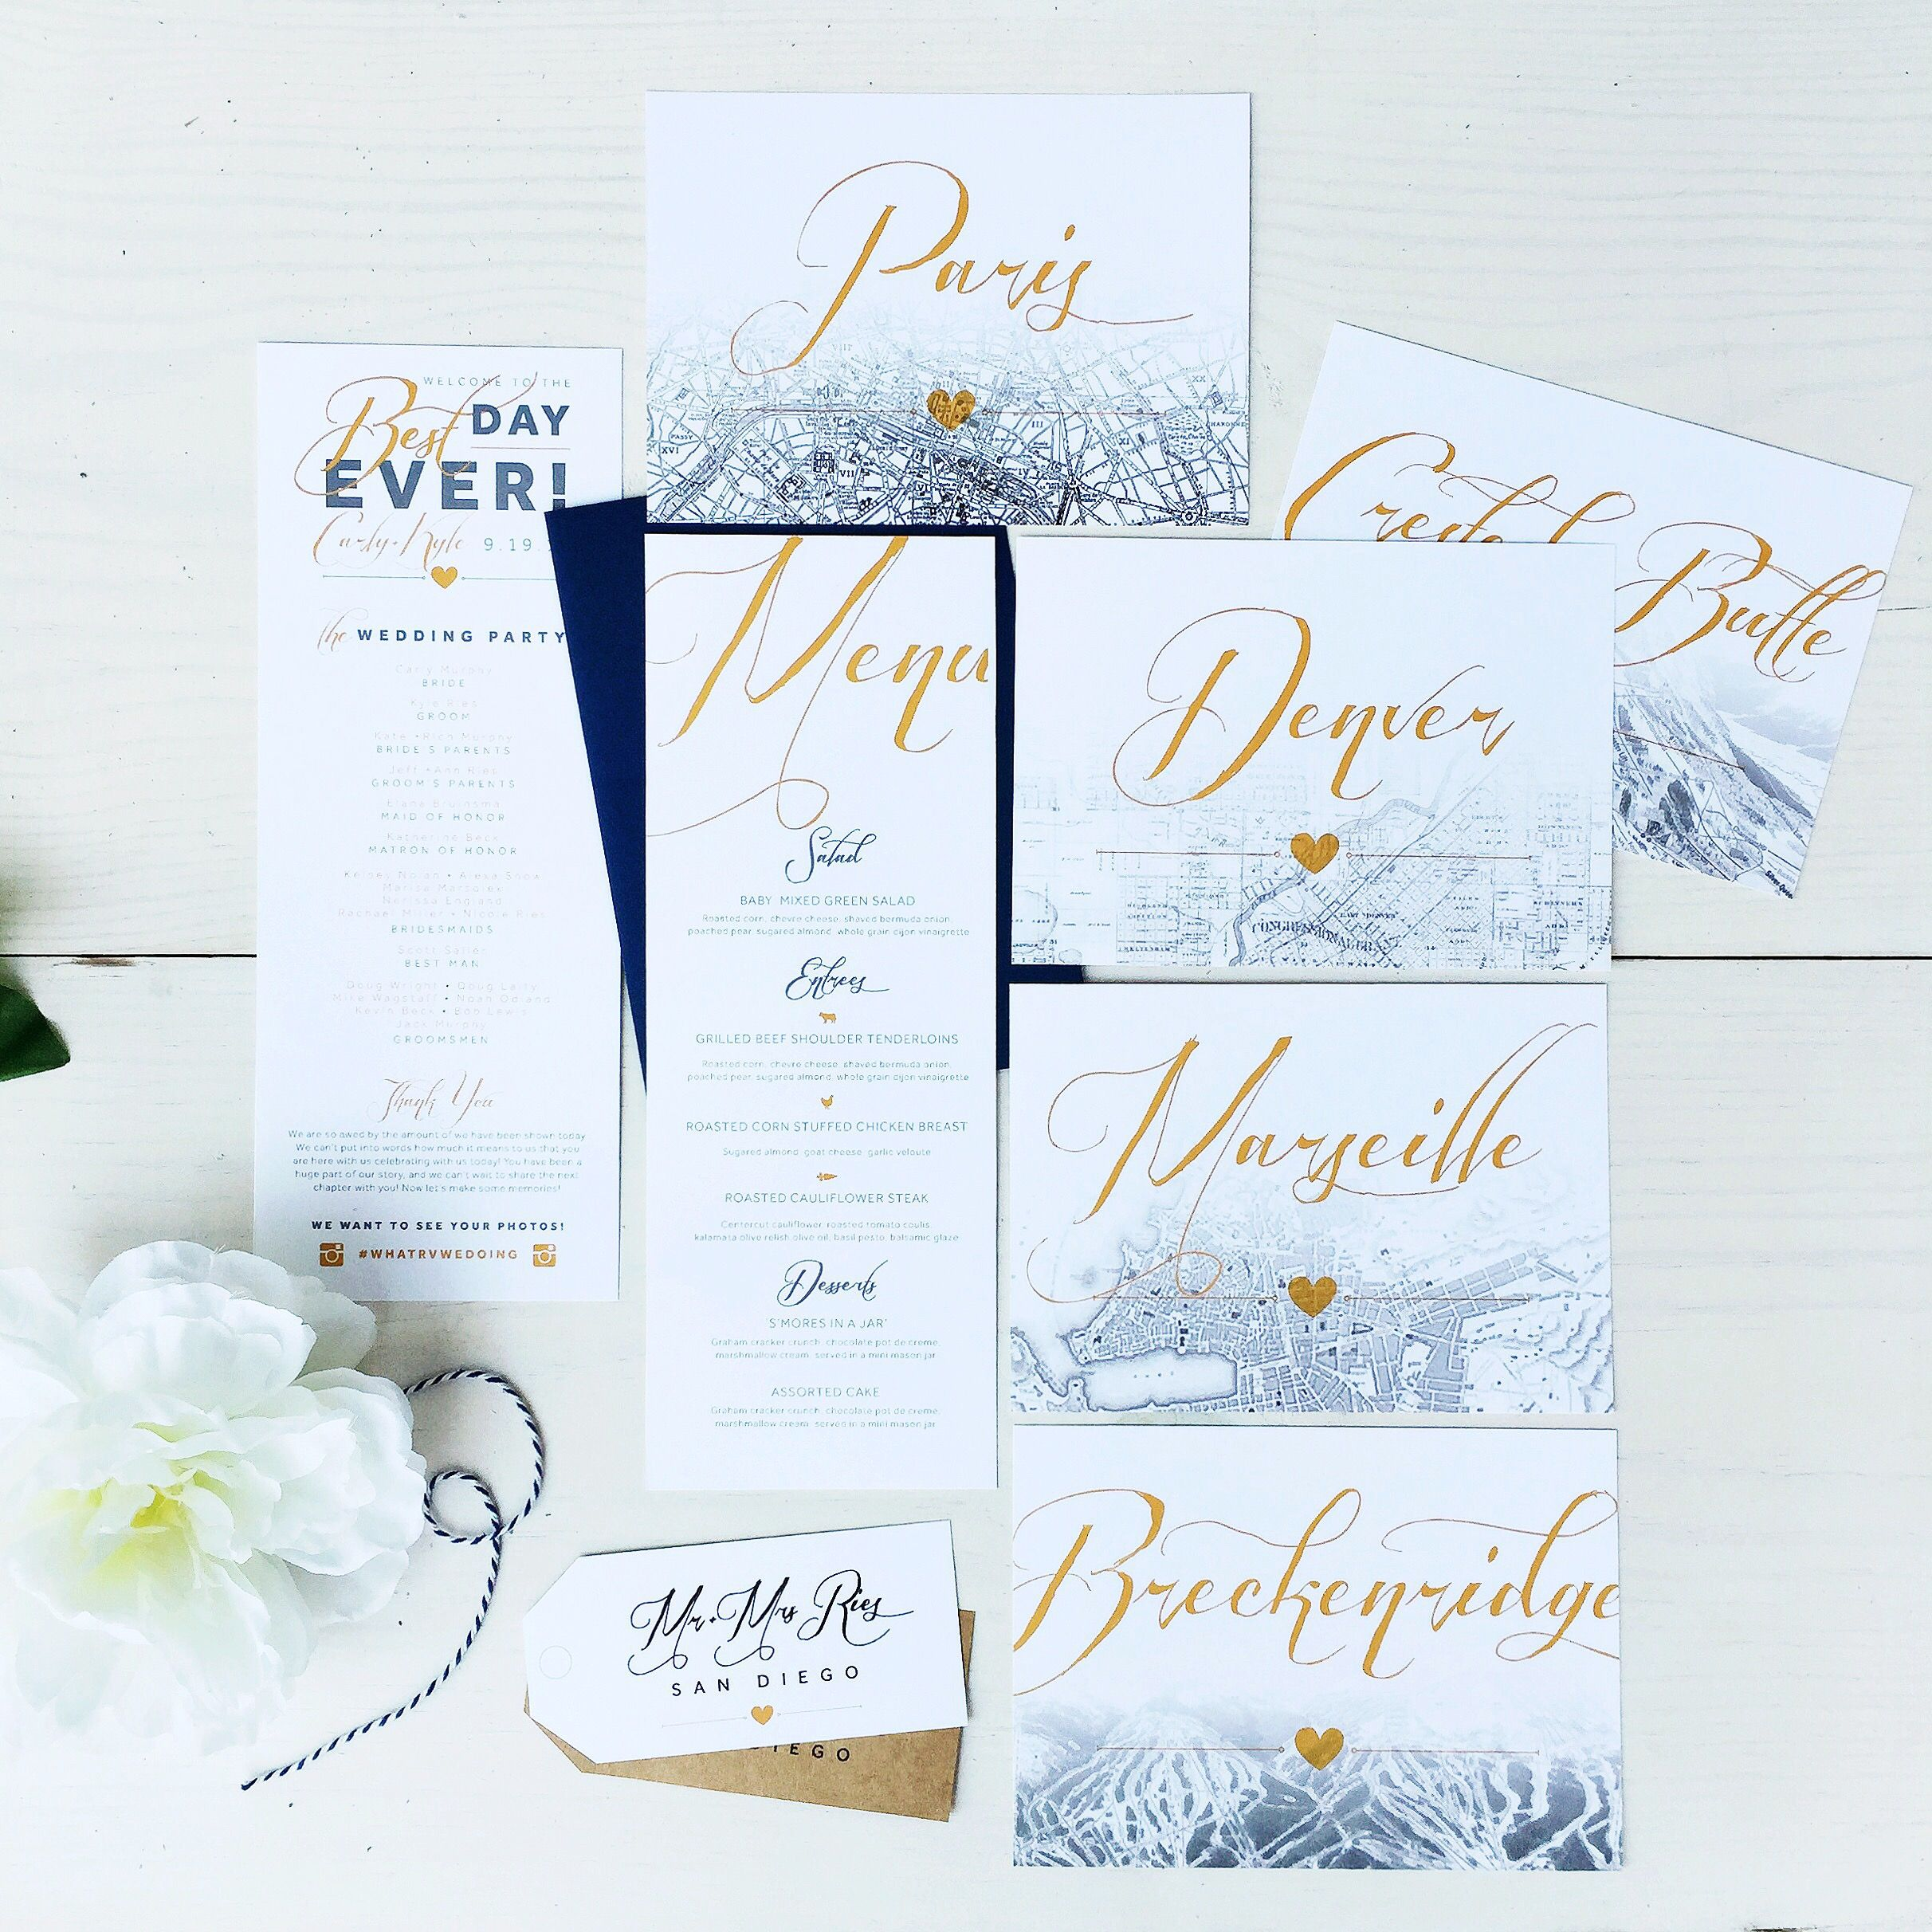 Travel Themed Custom Wedding Day Details: Table Numbers